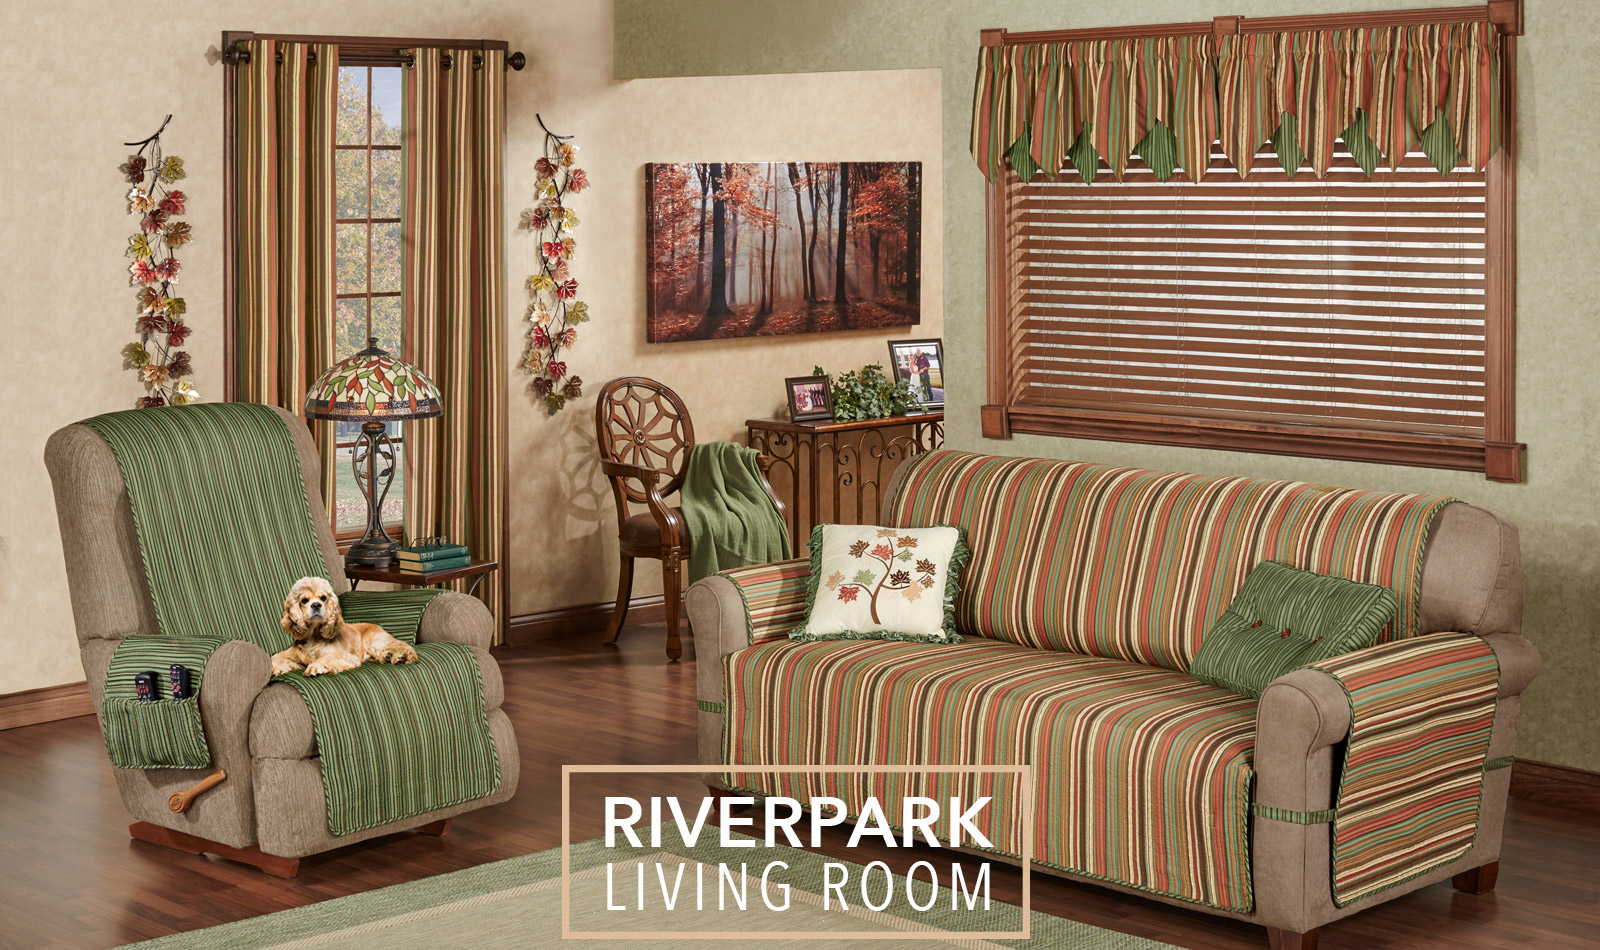 Get The Look - Riverpark Stripe Living Room - Furniture Covers